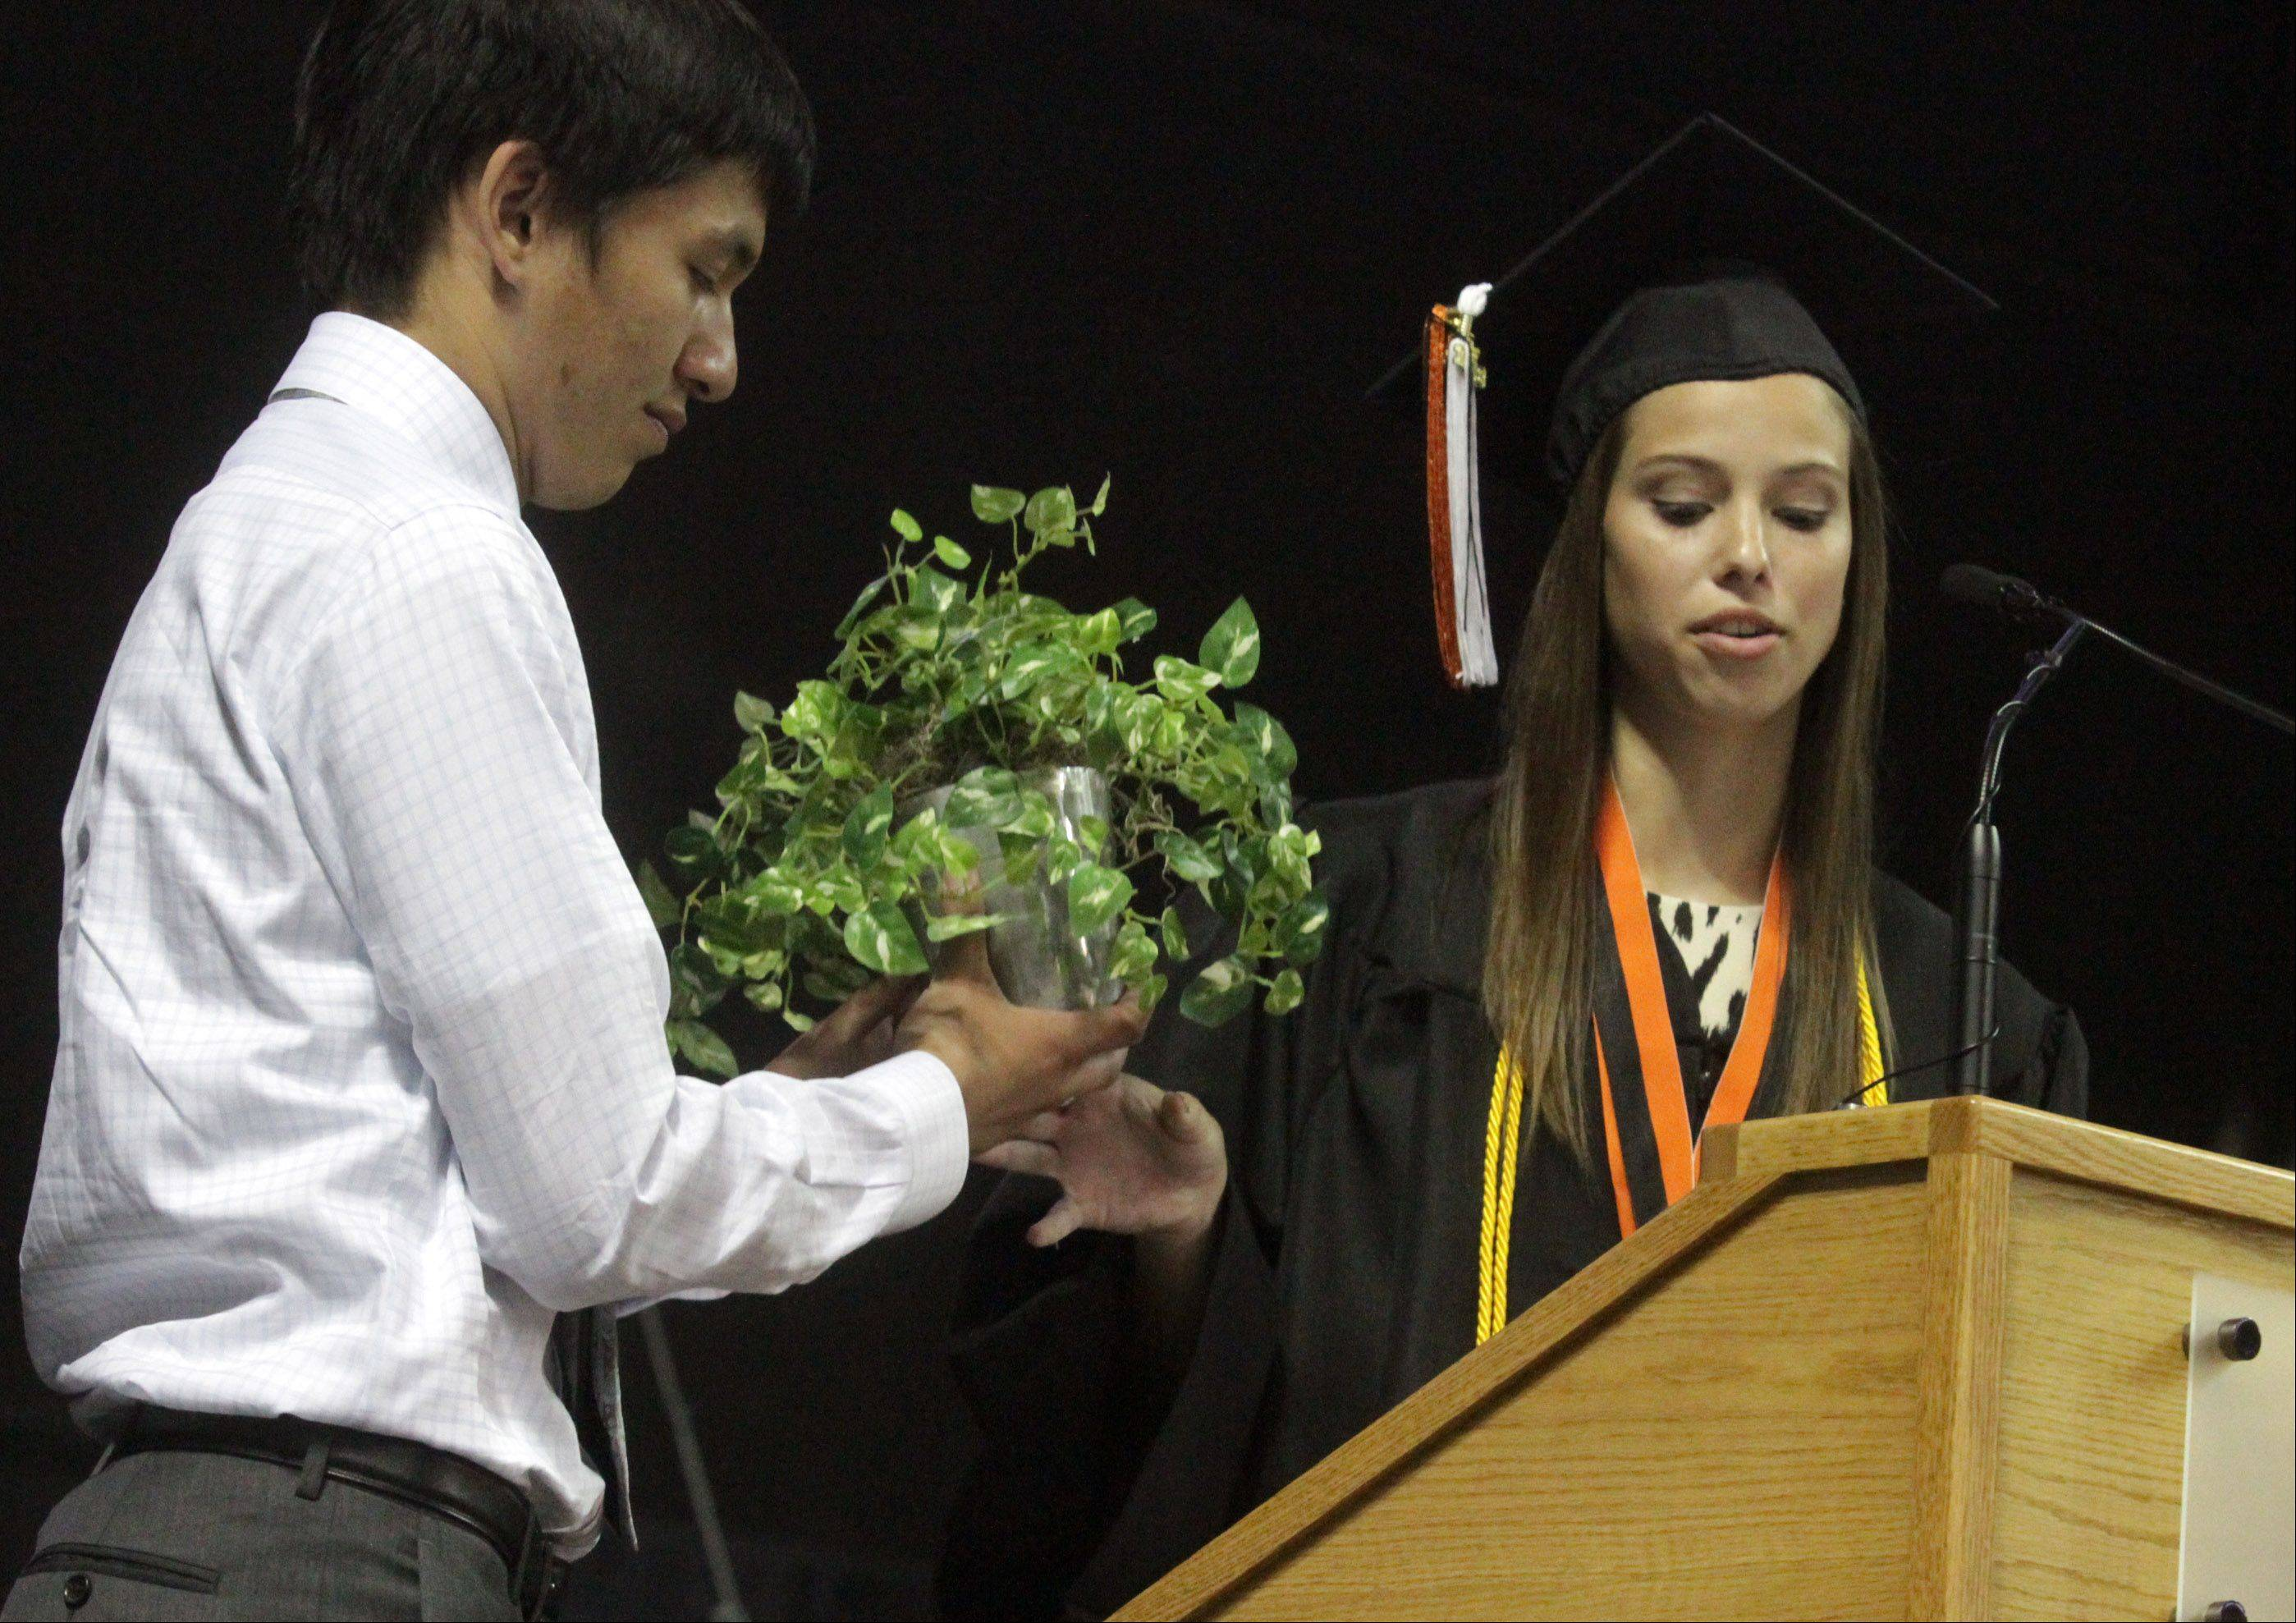 Libertyville High School 2013 student President Dana Humen presents the school's traditional ivy to 2014 student President Joseph Amdur.